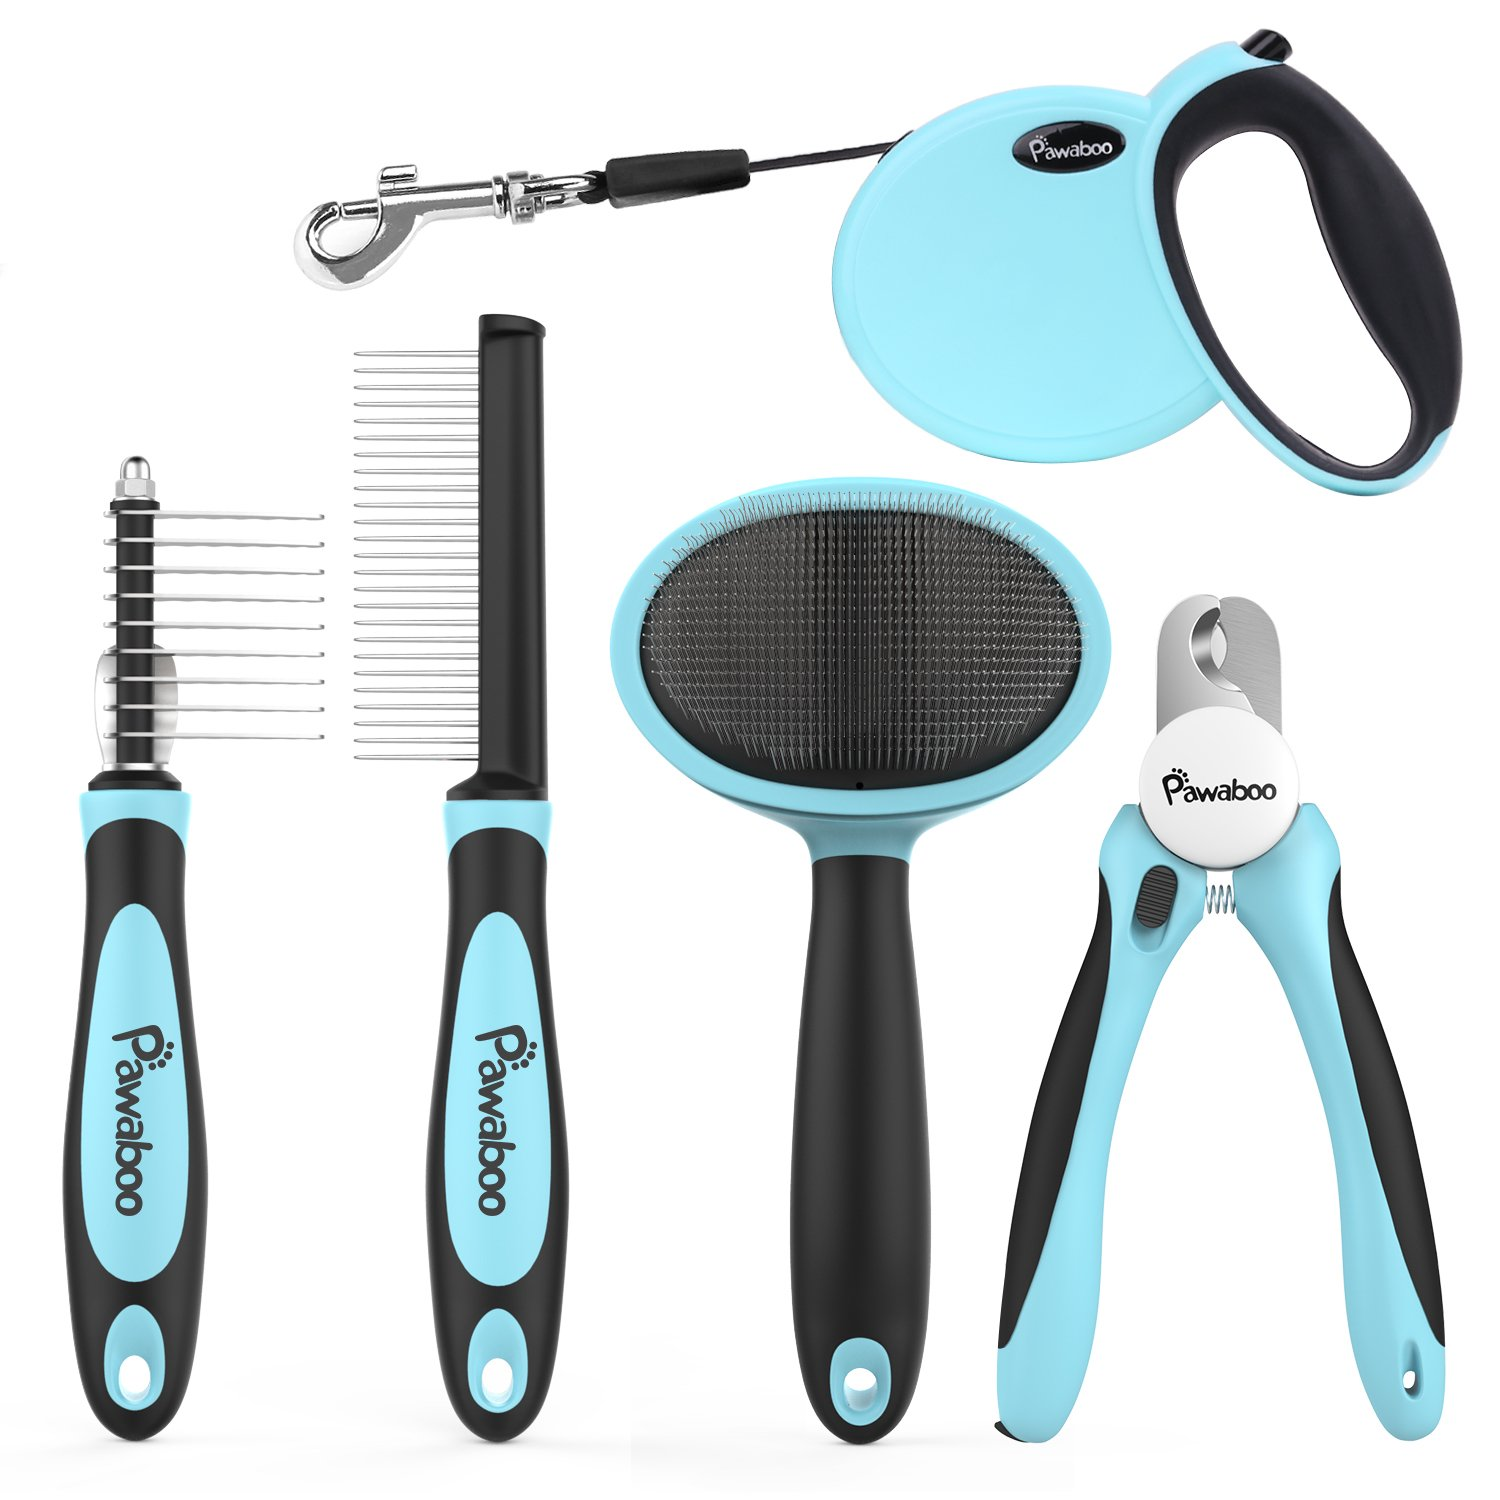 Pawaboo Pet Grooming Tools Kit, 5 Pieces Professional Dog Grooming Kit Comb Suit Pin Comb, Nail Clipper, Slicker Brush, Dematting Comb and Retractable Dog Leash for Pet Dogs Puppies, Light Blue